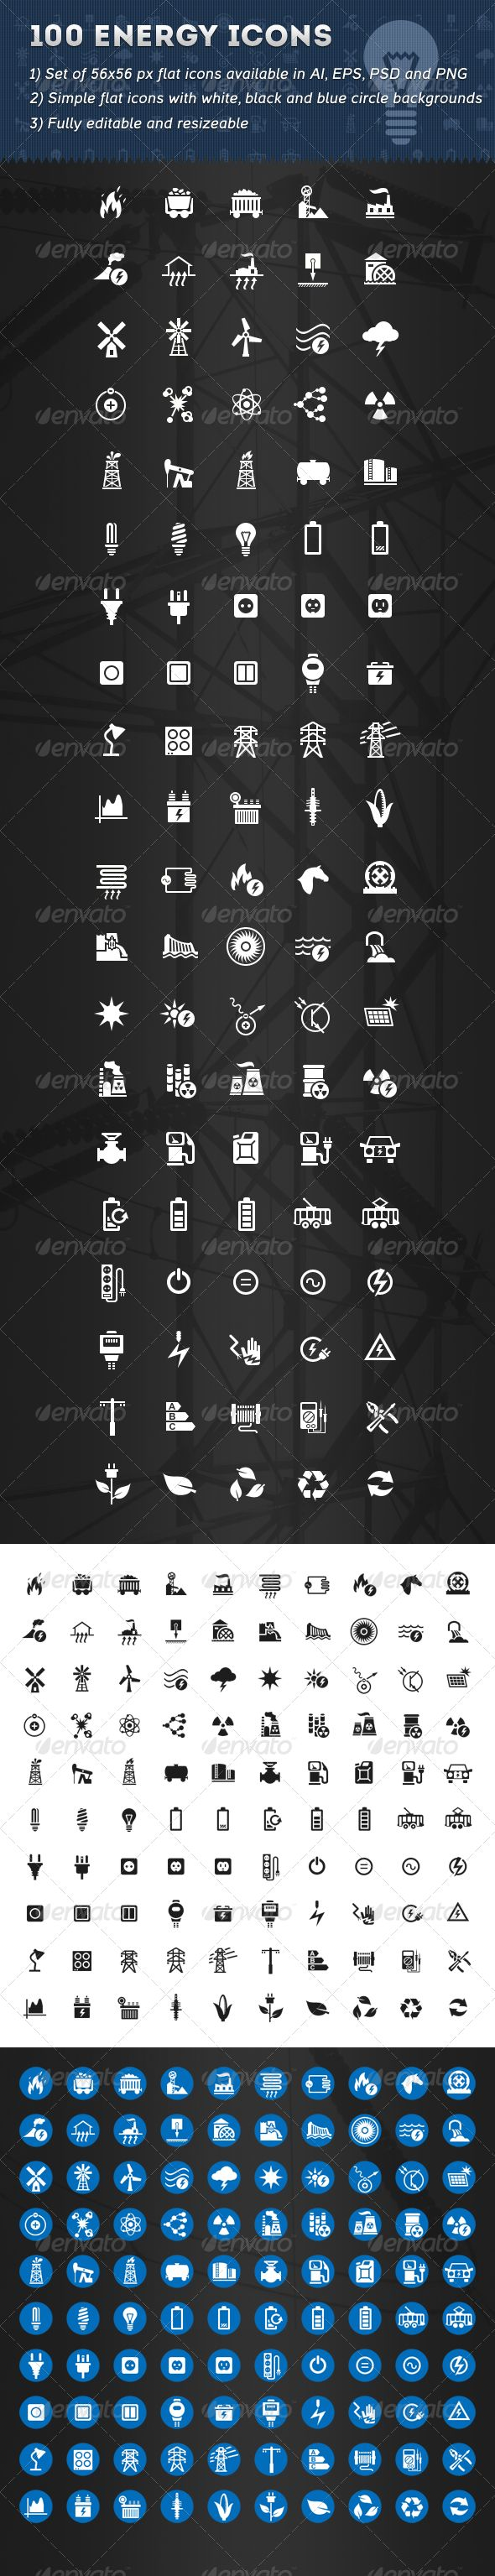 100 Energy Icons | Buy and Download: http://graphicriver.net/item/100-energy-icons/6192579?WT.ac=category_thumb&WT.z_author=valery_medved&ref=ksioks